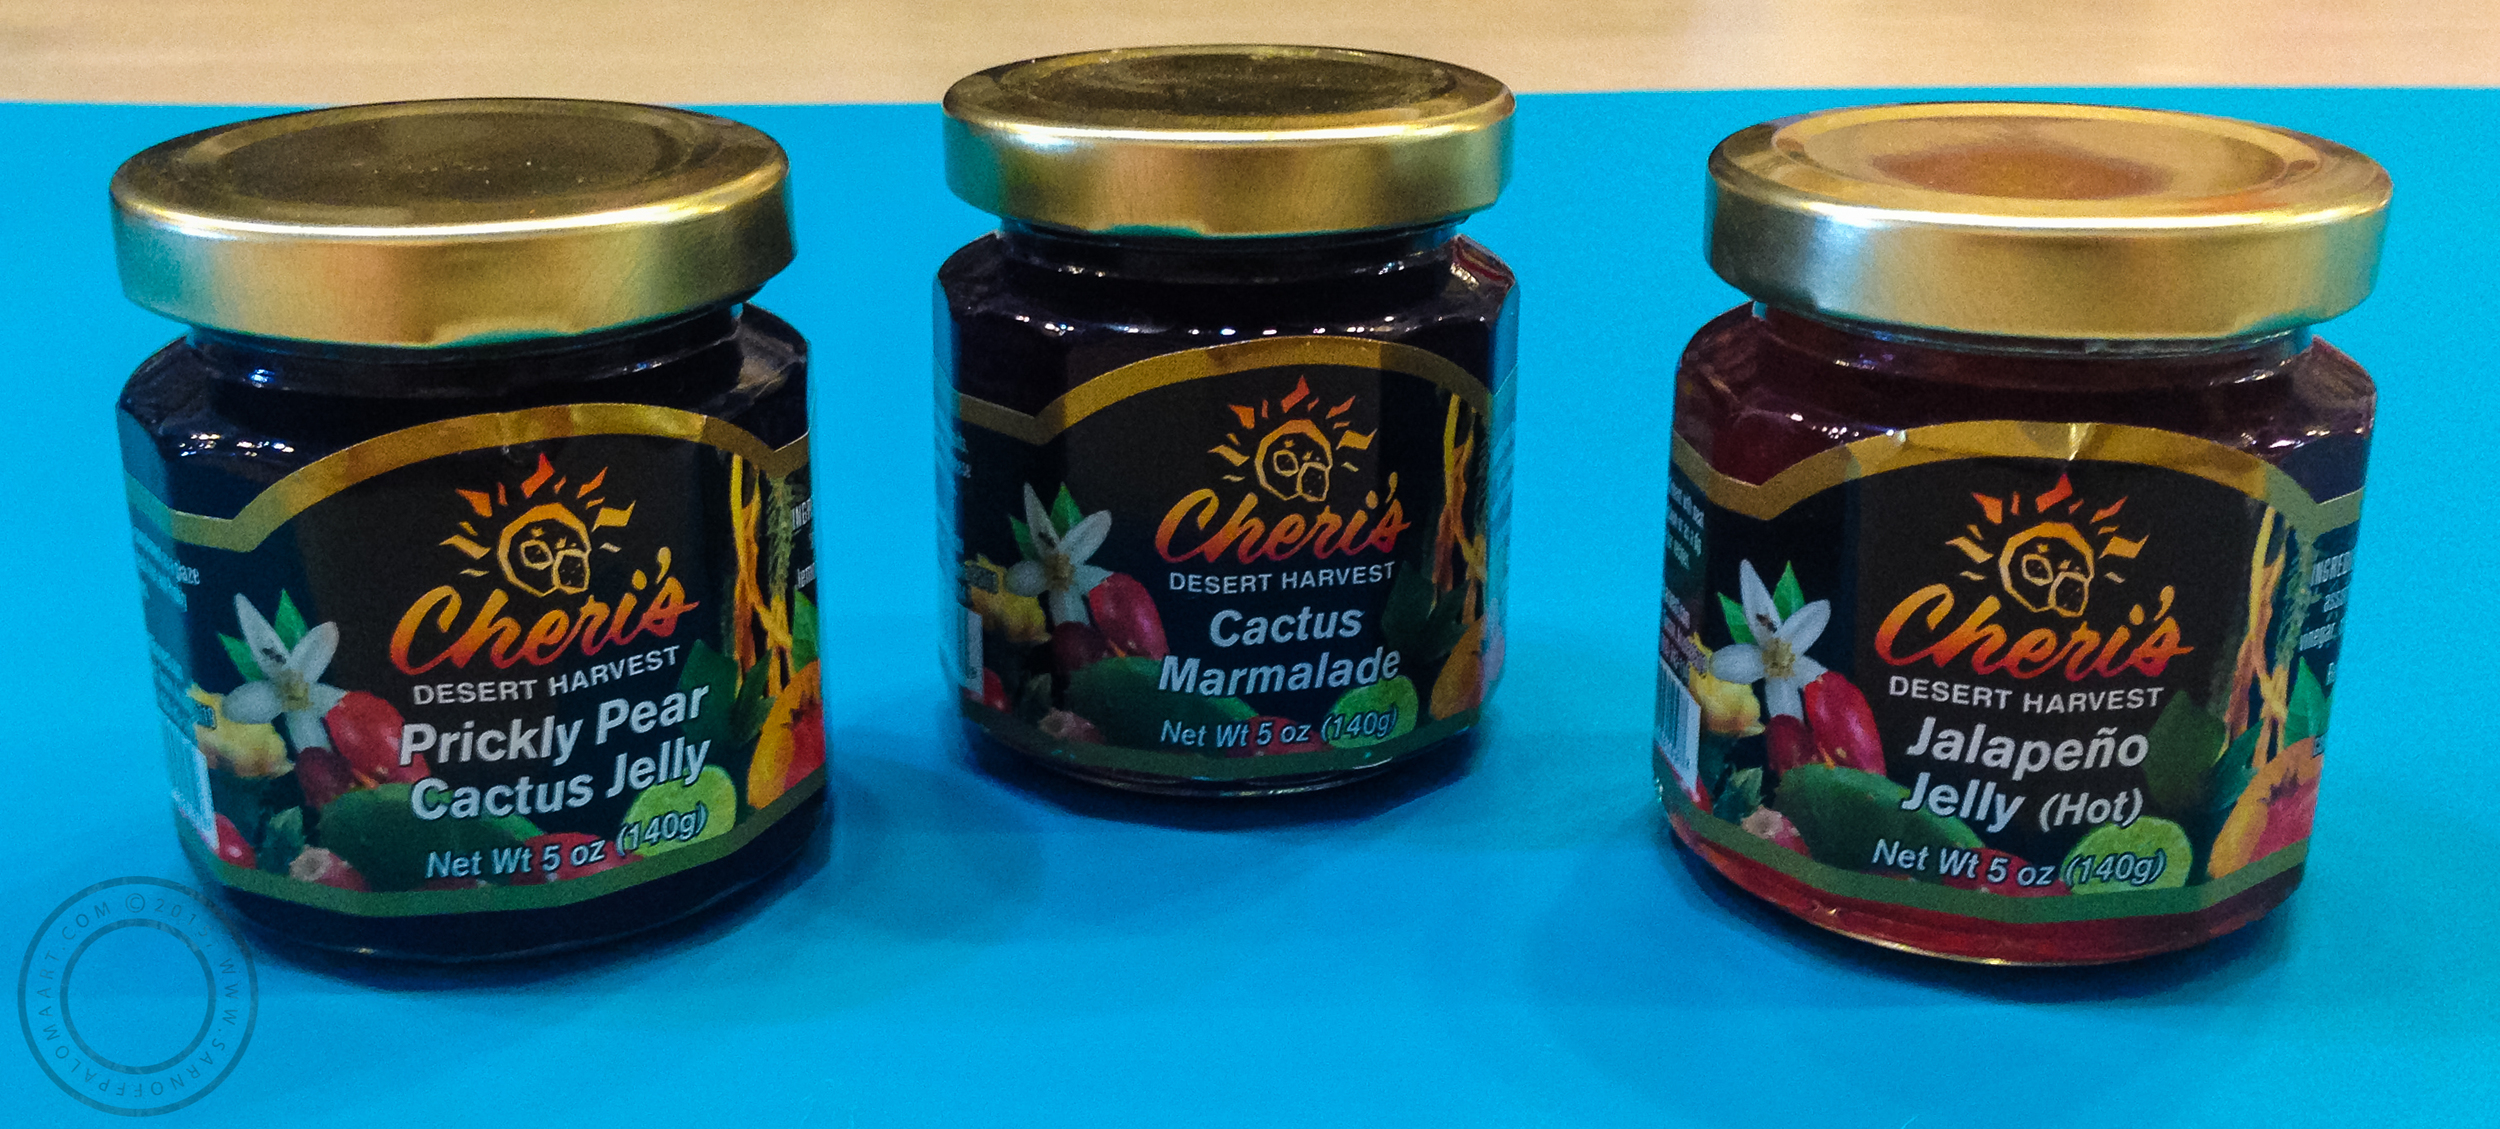 Assorted jellies by Cheri's Desert Harvest, pictured: Jalapeño Jelly, Prickly Pear Cactus Jelly, and Cactus Marmalade-$5 each